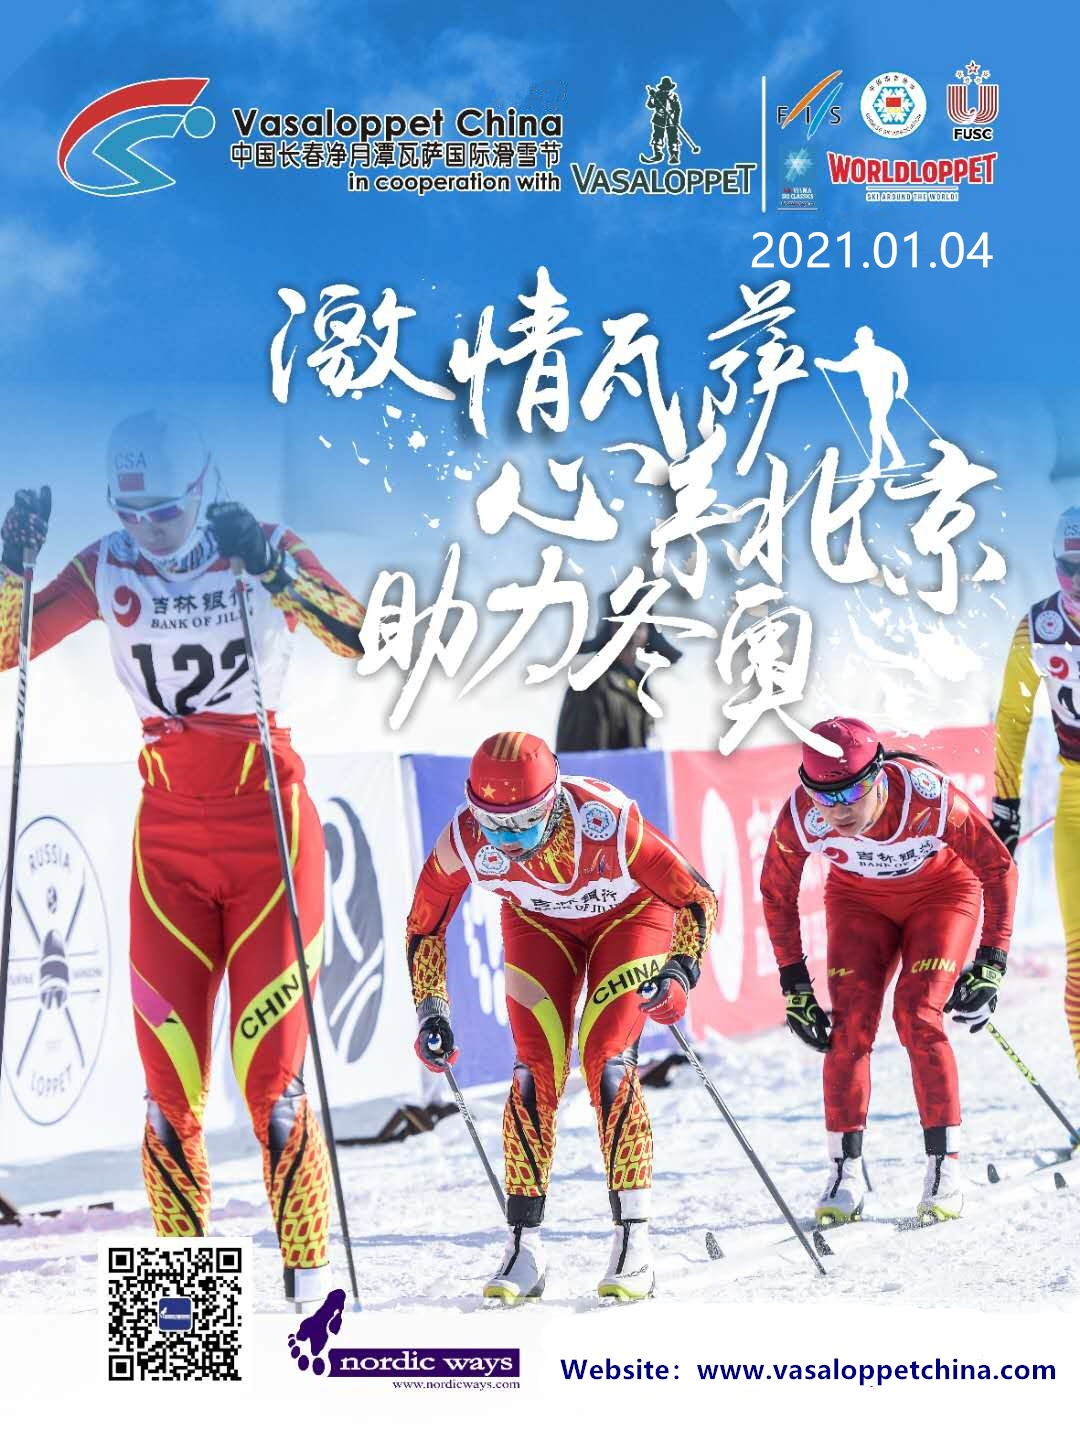 Online Registration for Vasaloppet China 2021 is opening!